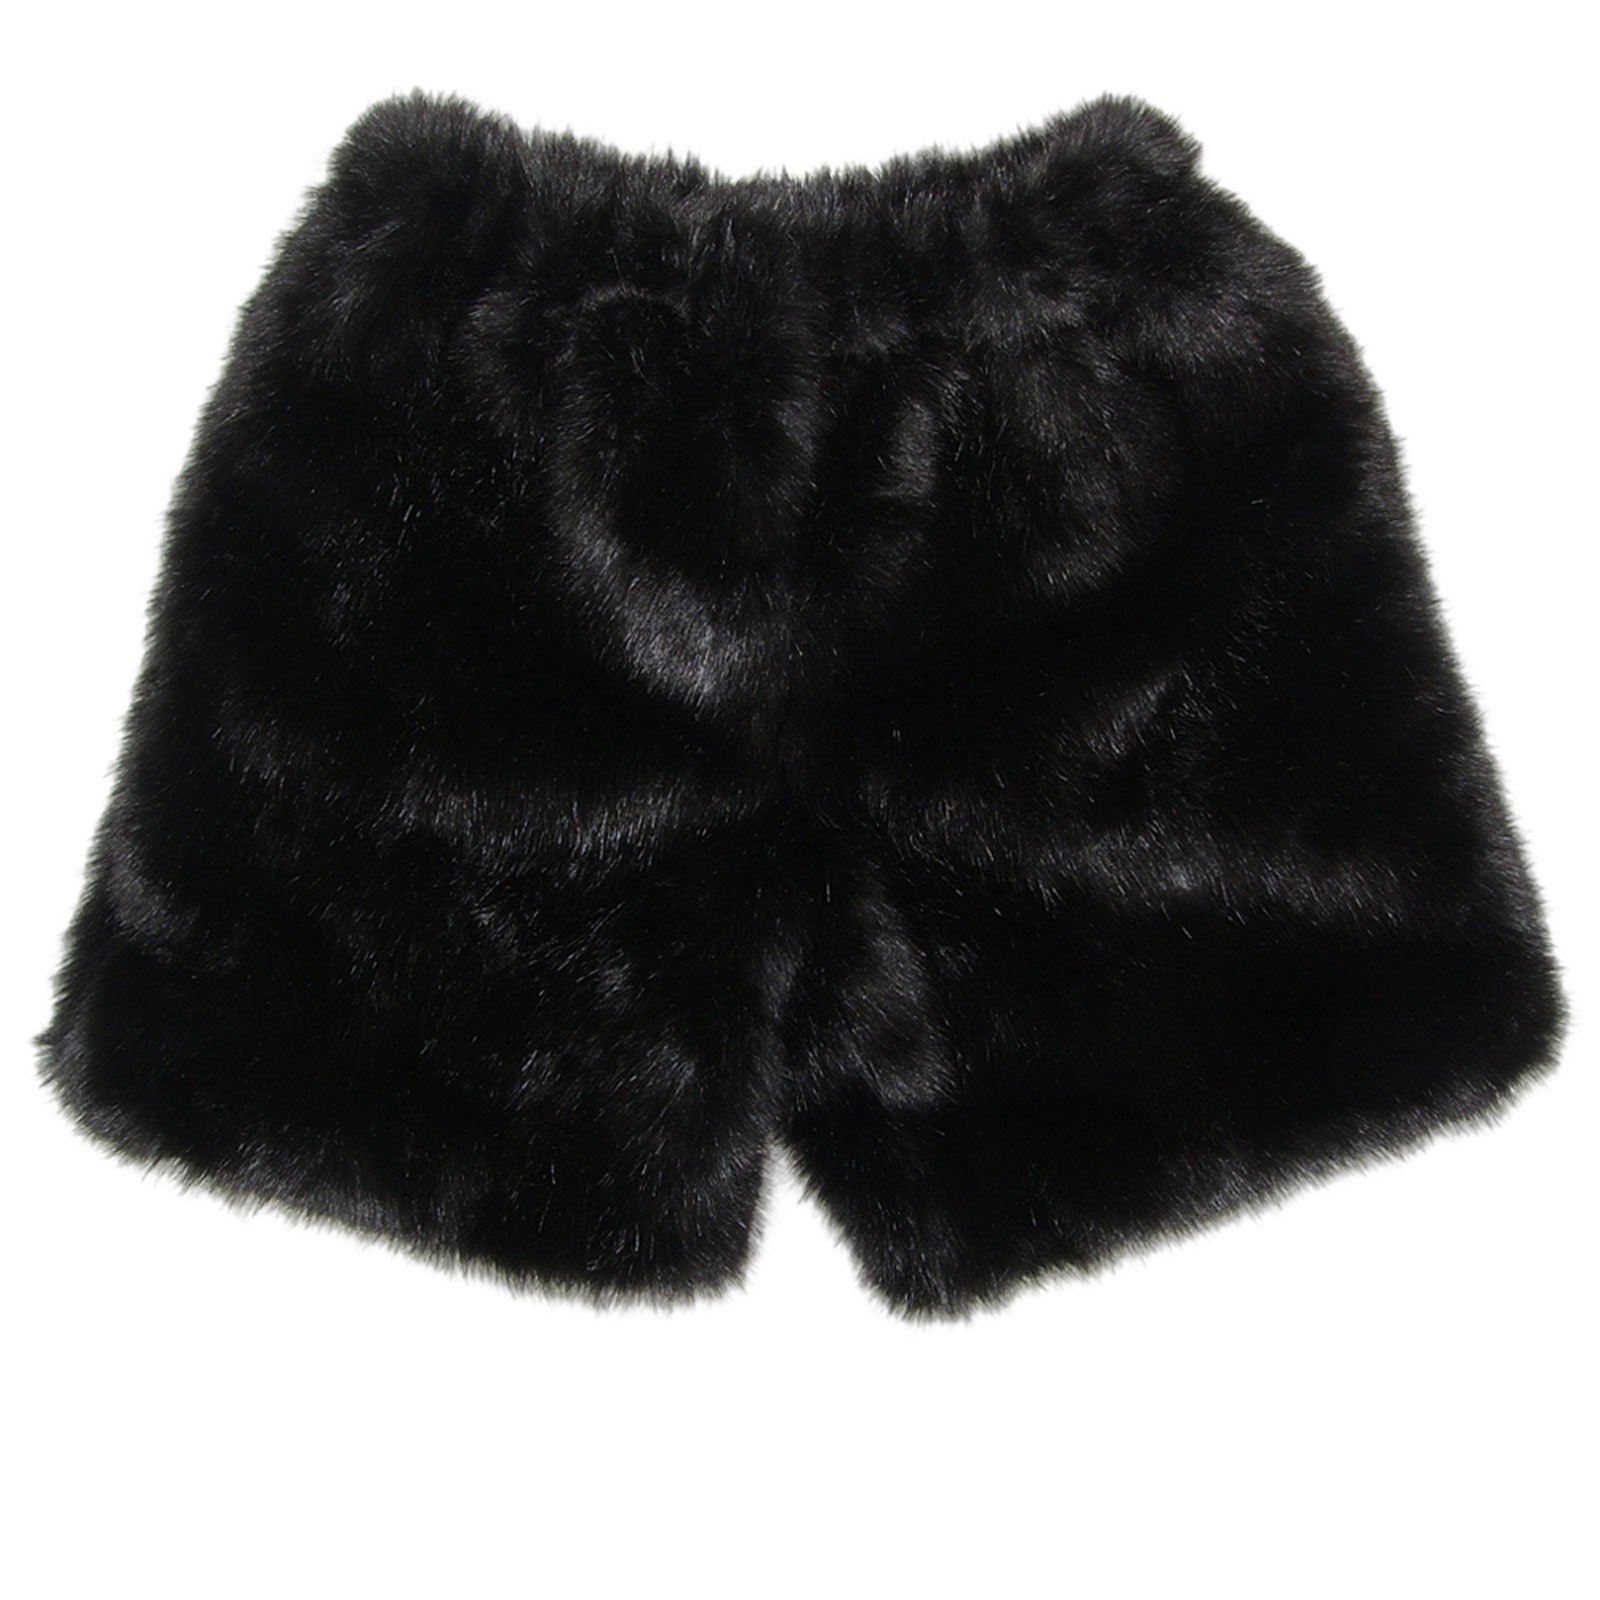 MinkgLove Fake Mink Boxers Silky Texture Feel, Fur Fly, Black - Single Sided Fur